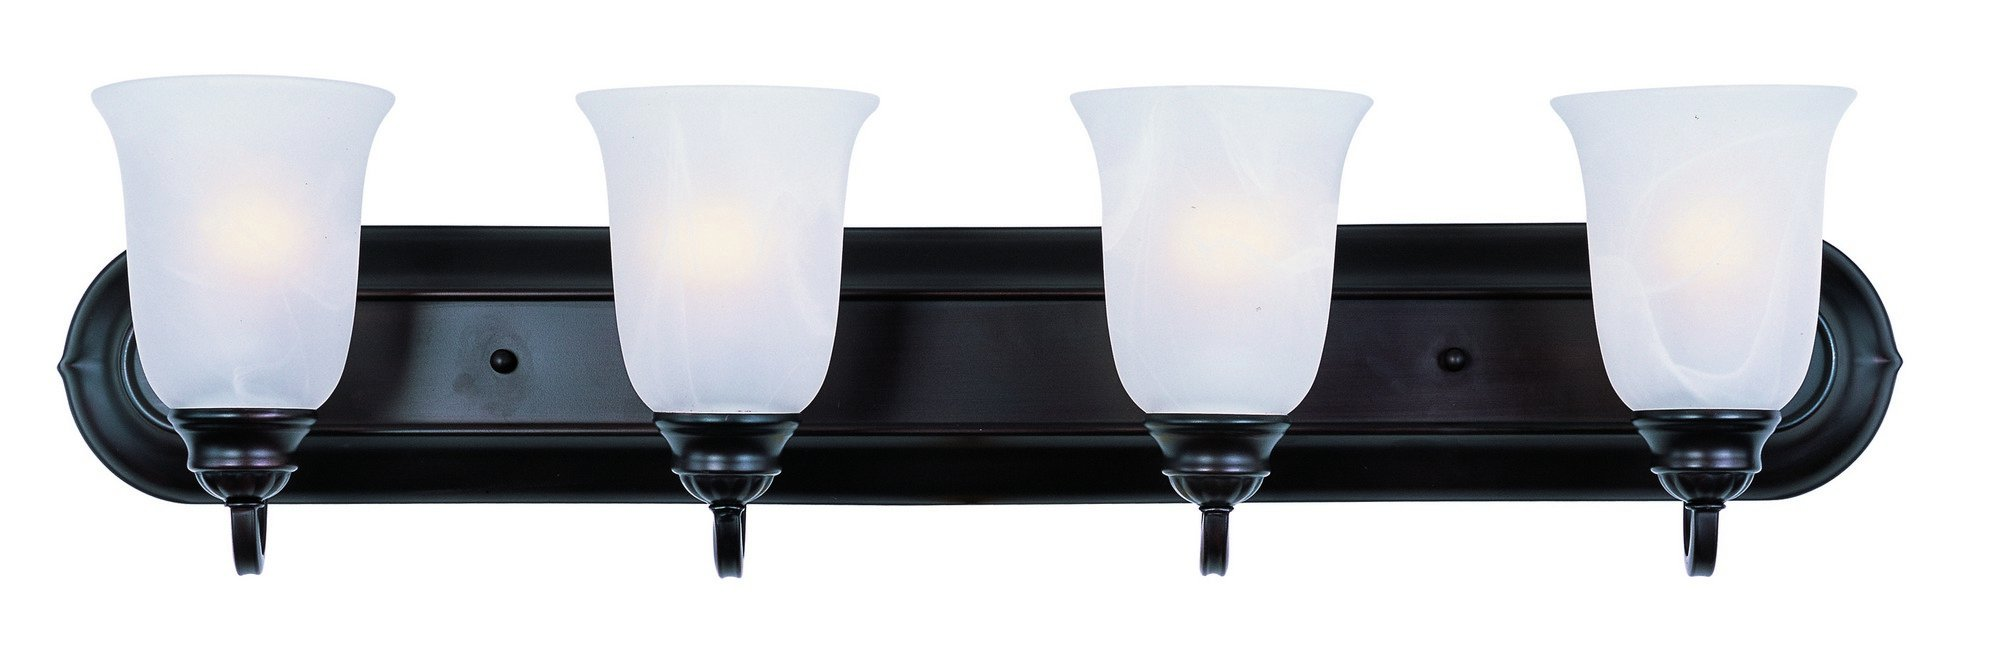 Maxim 7138MROI Essentials 4-Light Bath Vanity, Oil Rubbed Bronze Finish, Marble Glass, MB Incandescent Bulb, 13W Max, Dry Safety Rating, 2700K Color Temp, Glass Shade Material, 2700 Rated Lumens